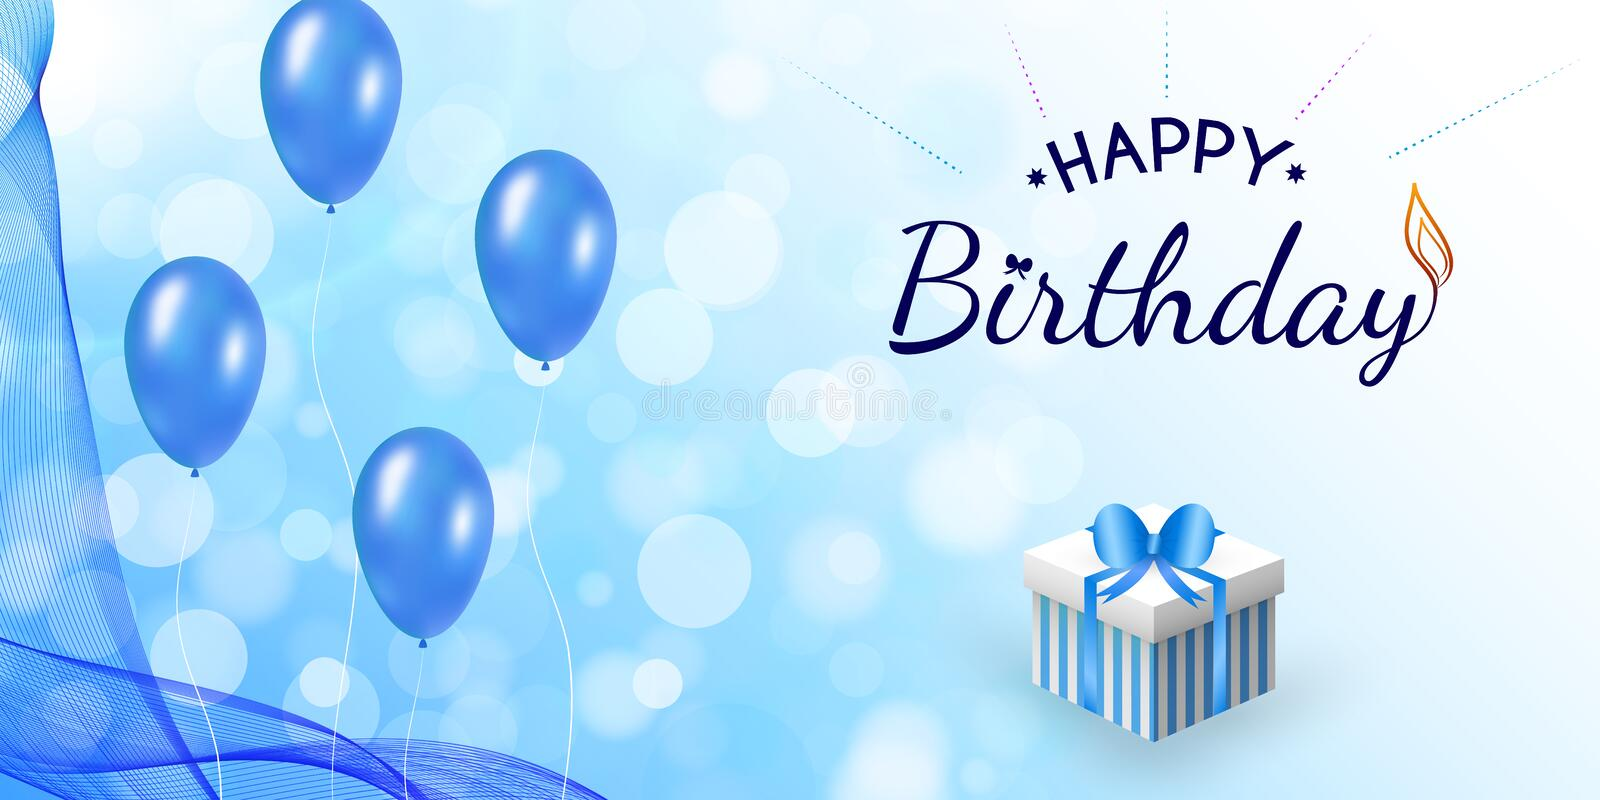 Happy birthday blue design with balloon, wavy veil royalty free illustration